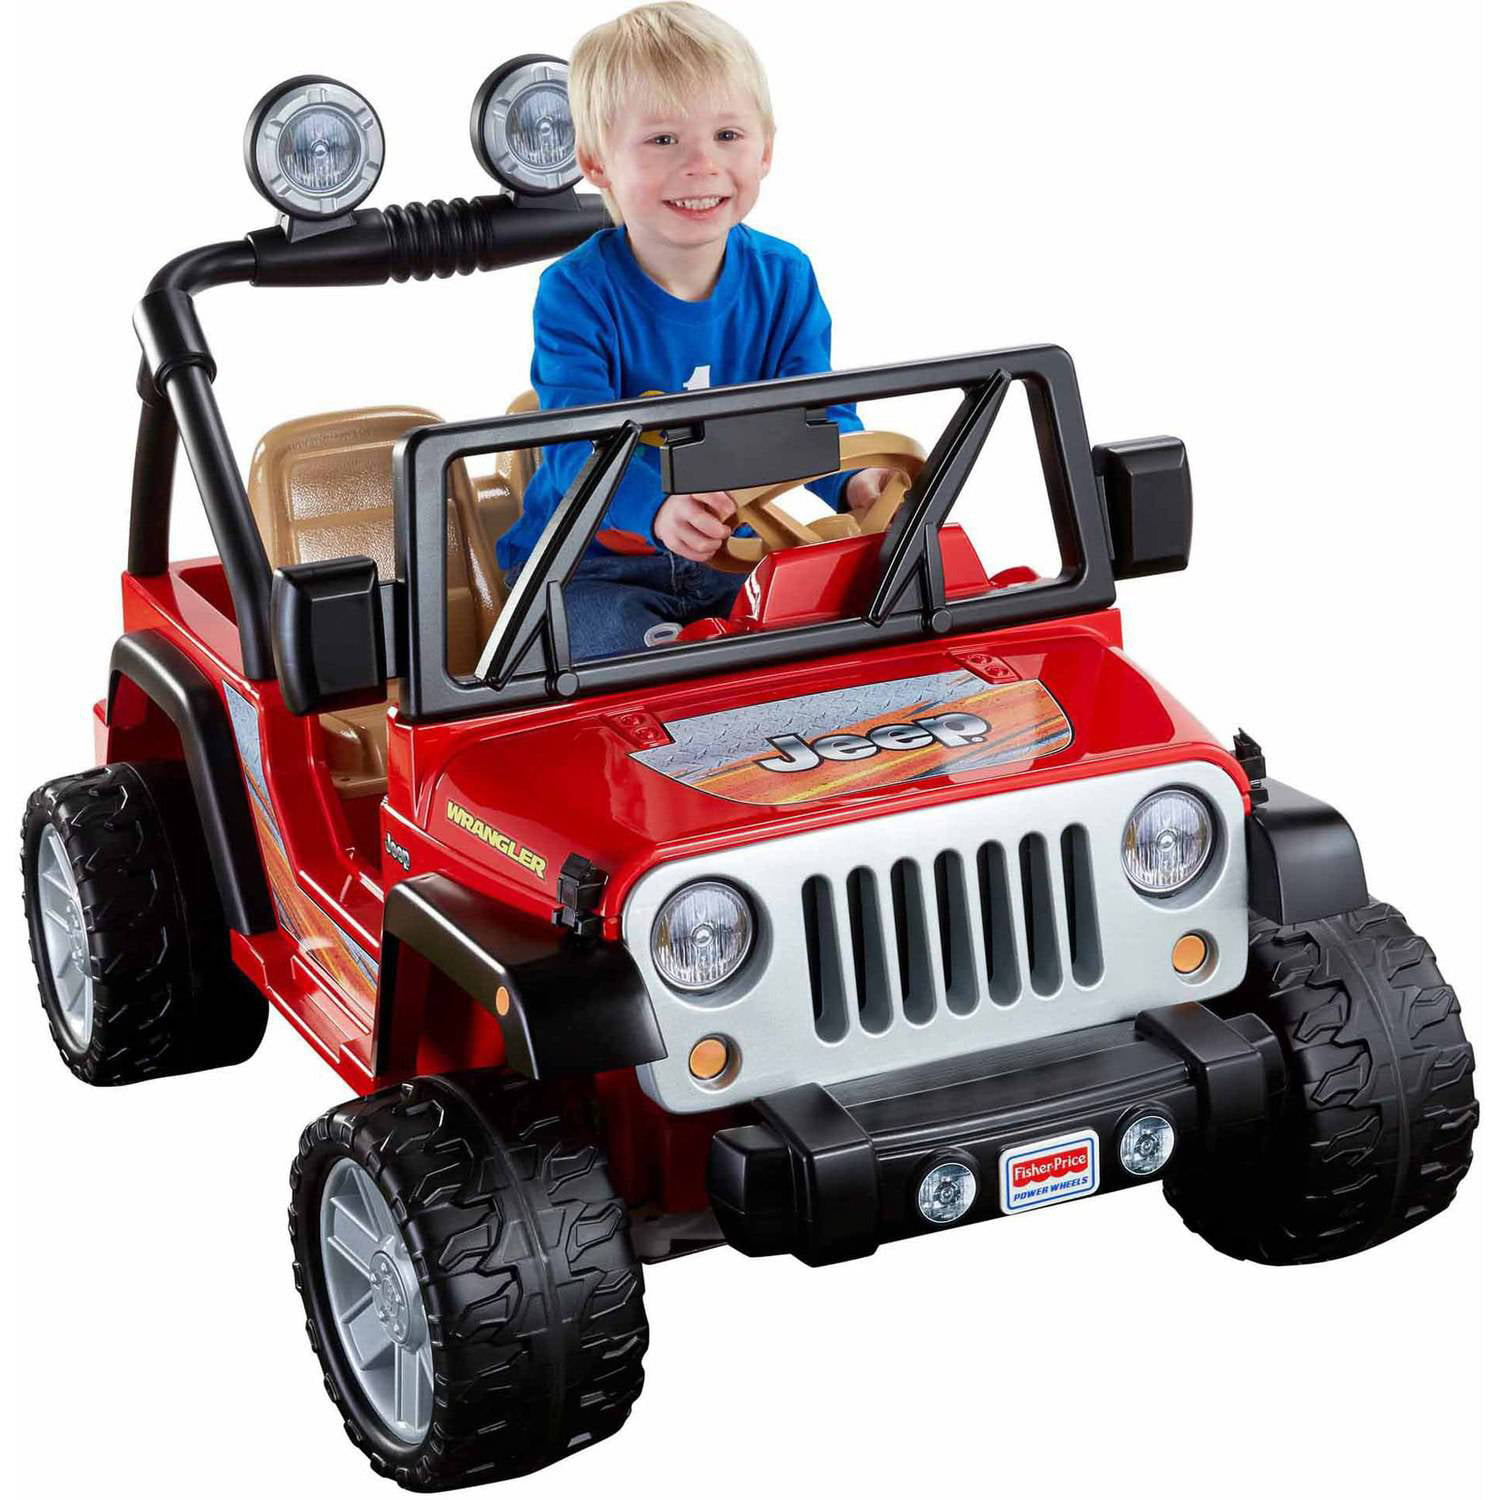 Power Wheels Jeep Wrangler 12-Volt Battery-Powered Ride-On, Red by Fisher-Price